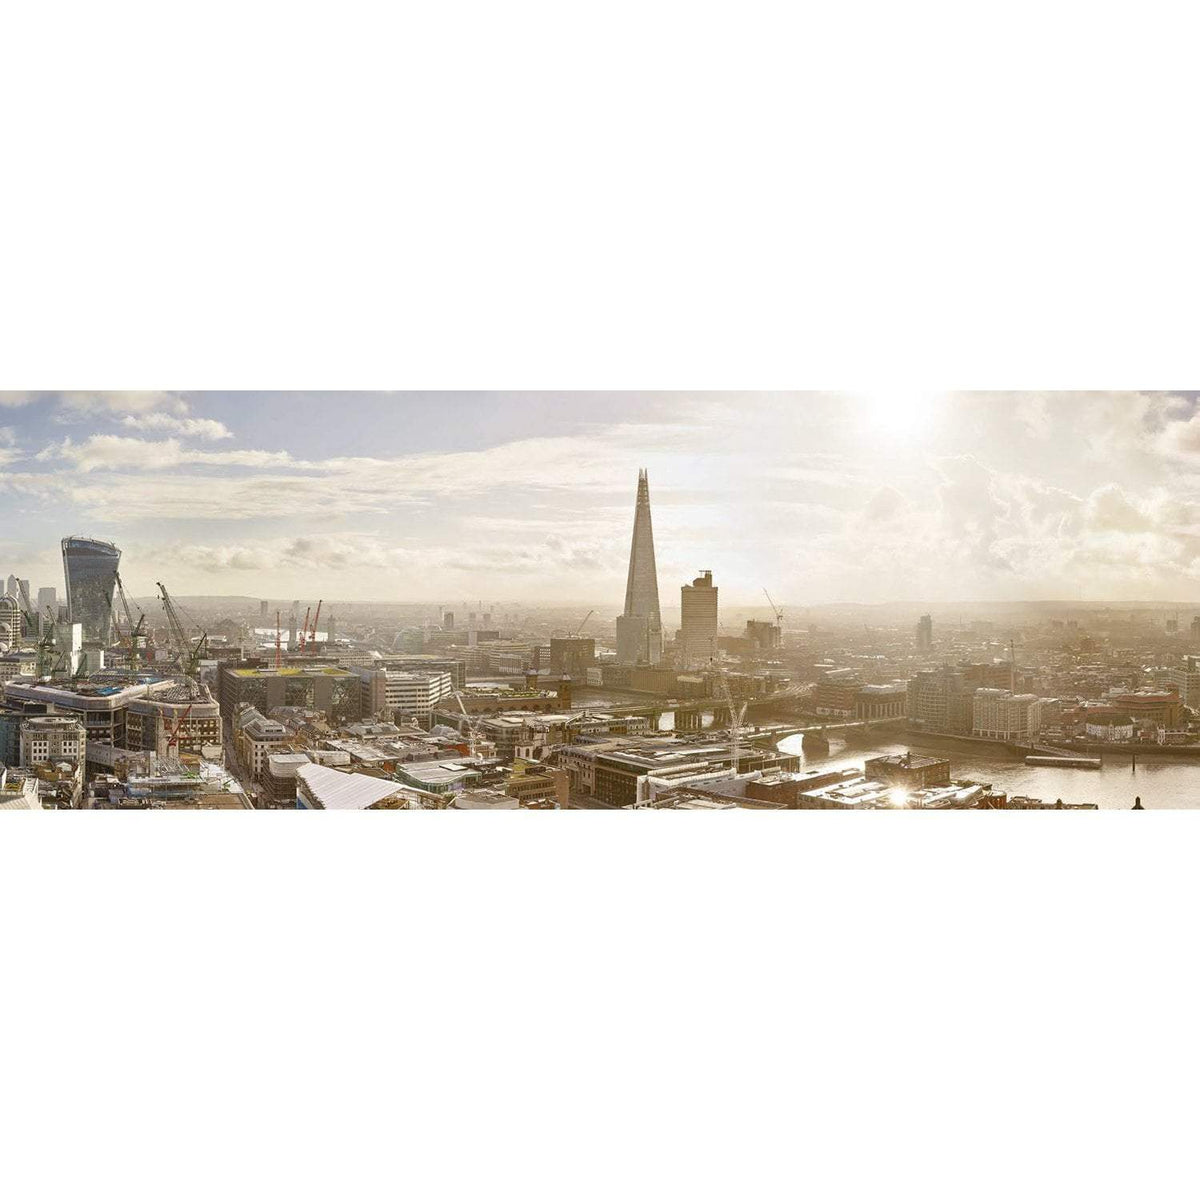 Wall Acoustics Muffle Mural - London Skyline, Day